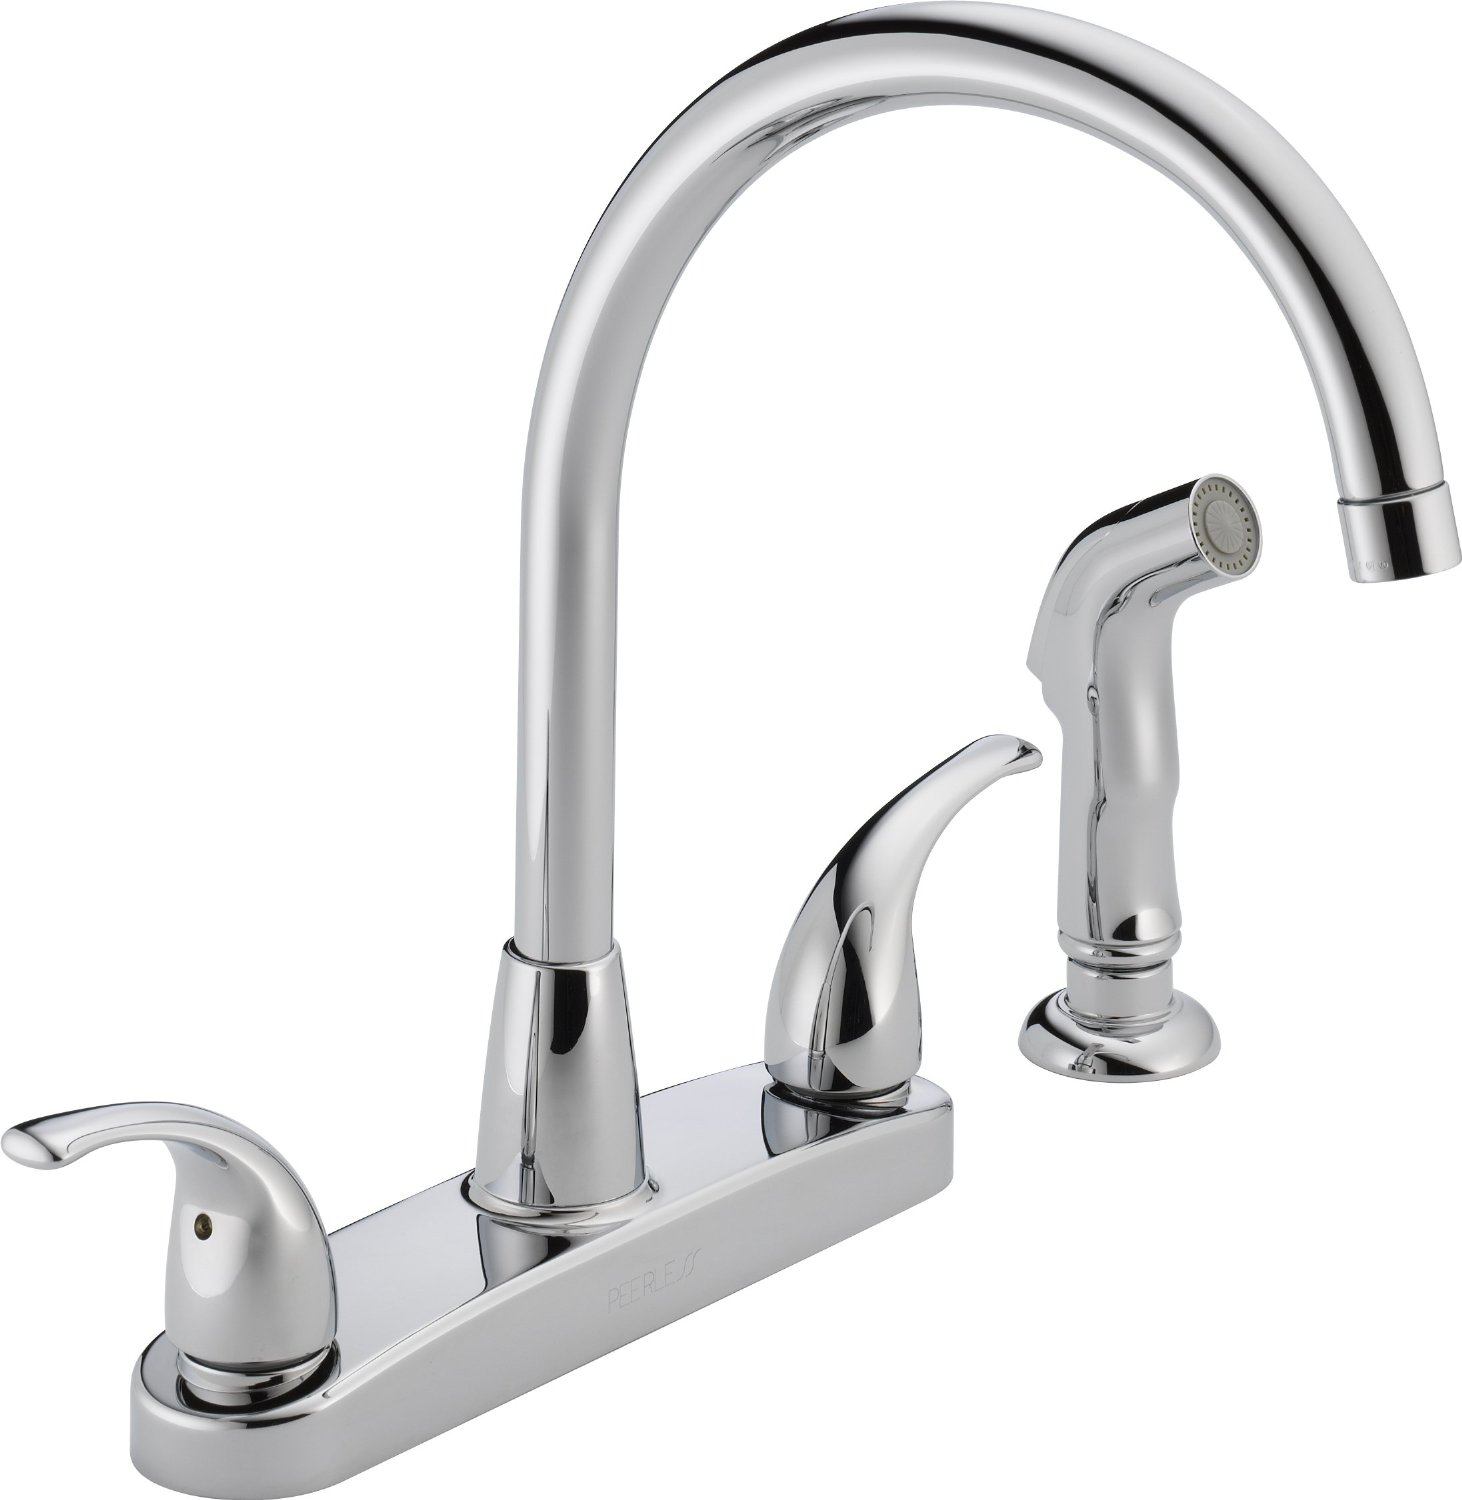 repair kitchen faucet delta kitchen faucet repair faucet replacement u repair in west hills